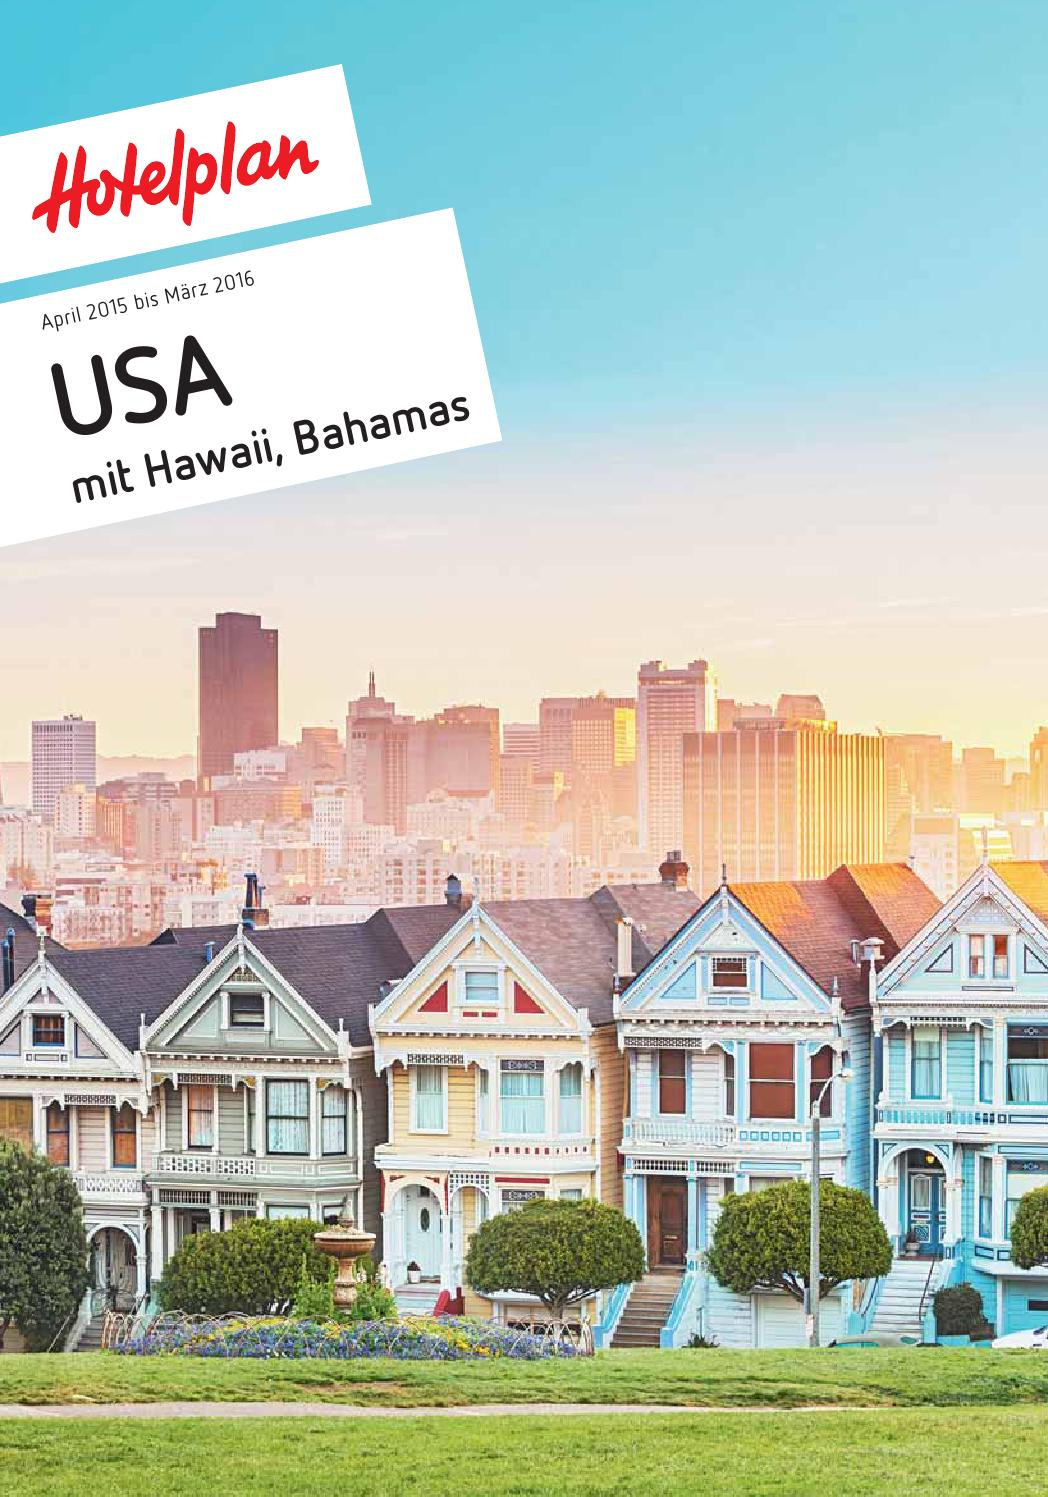 Hotelplan Usa Mit Hawaii Bahamas April 2015 Bis März 2016 By Hotelplan Suisse Mtch Ag Issuu